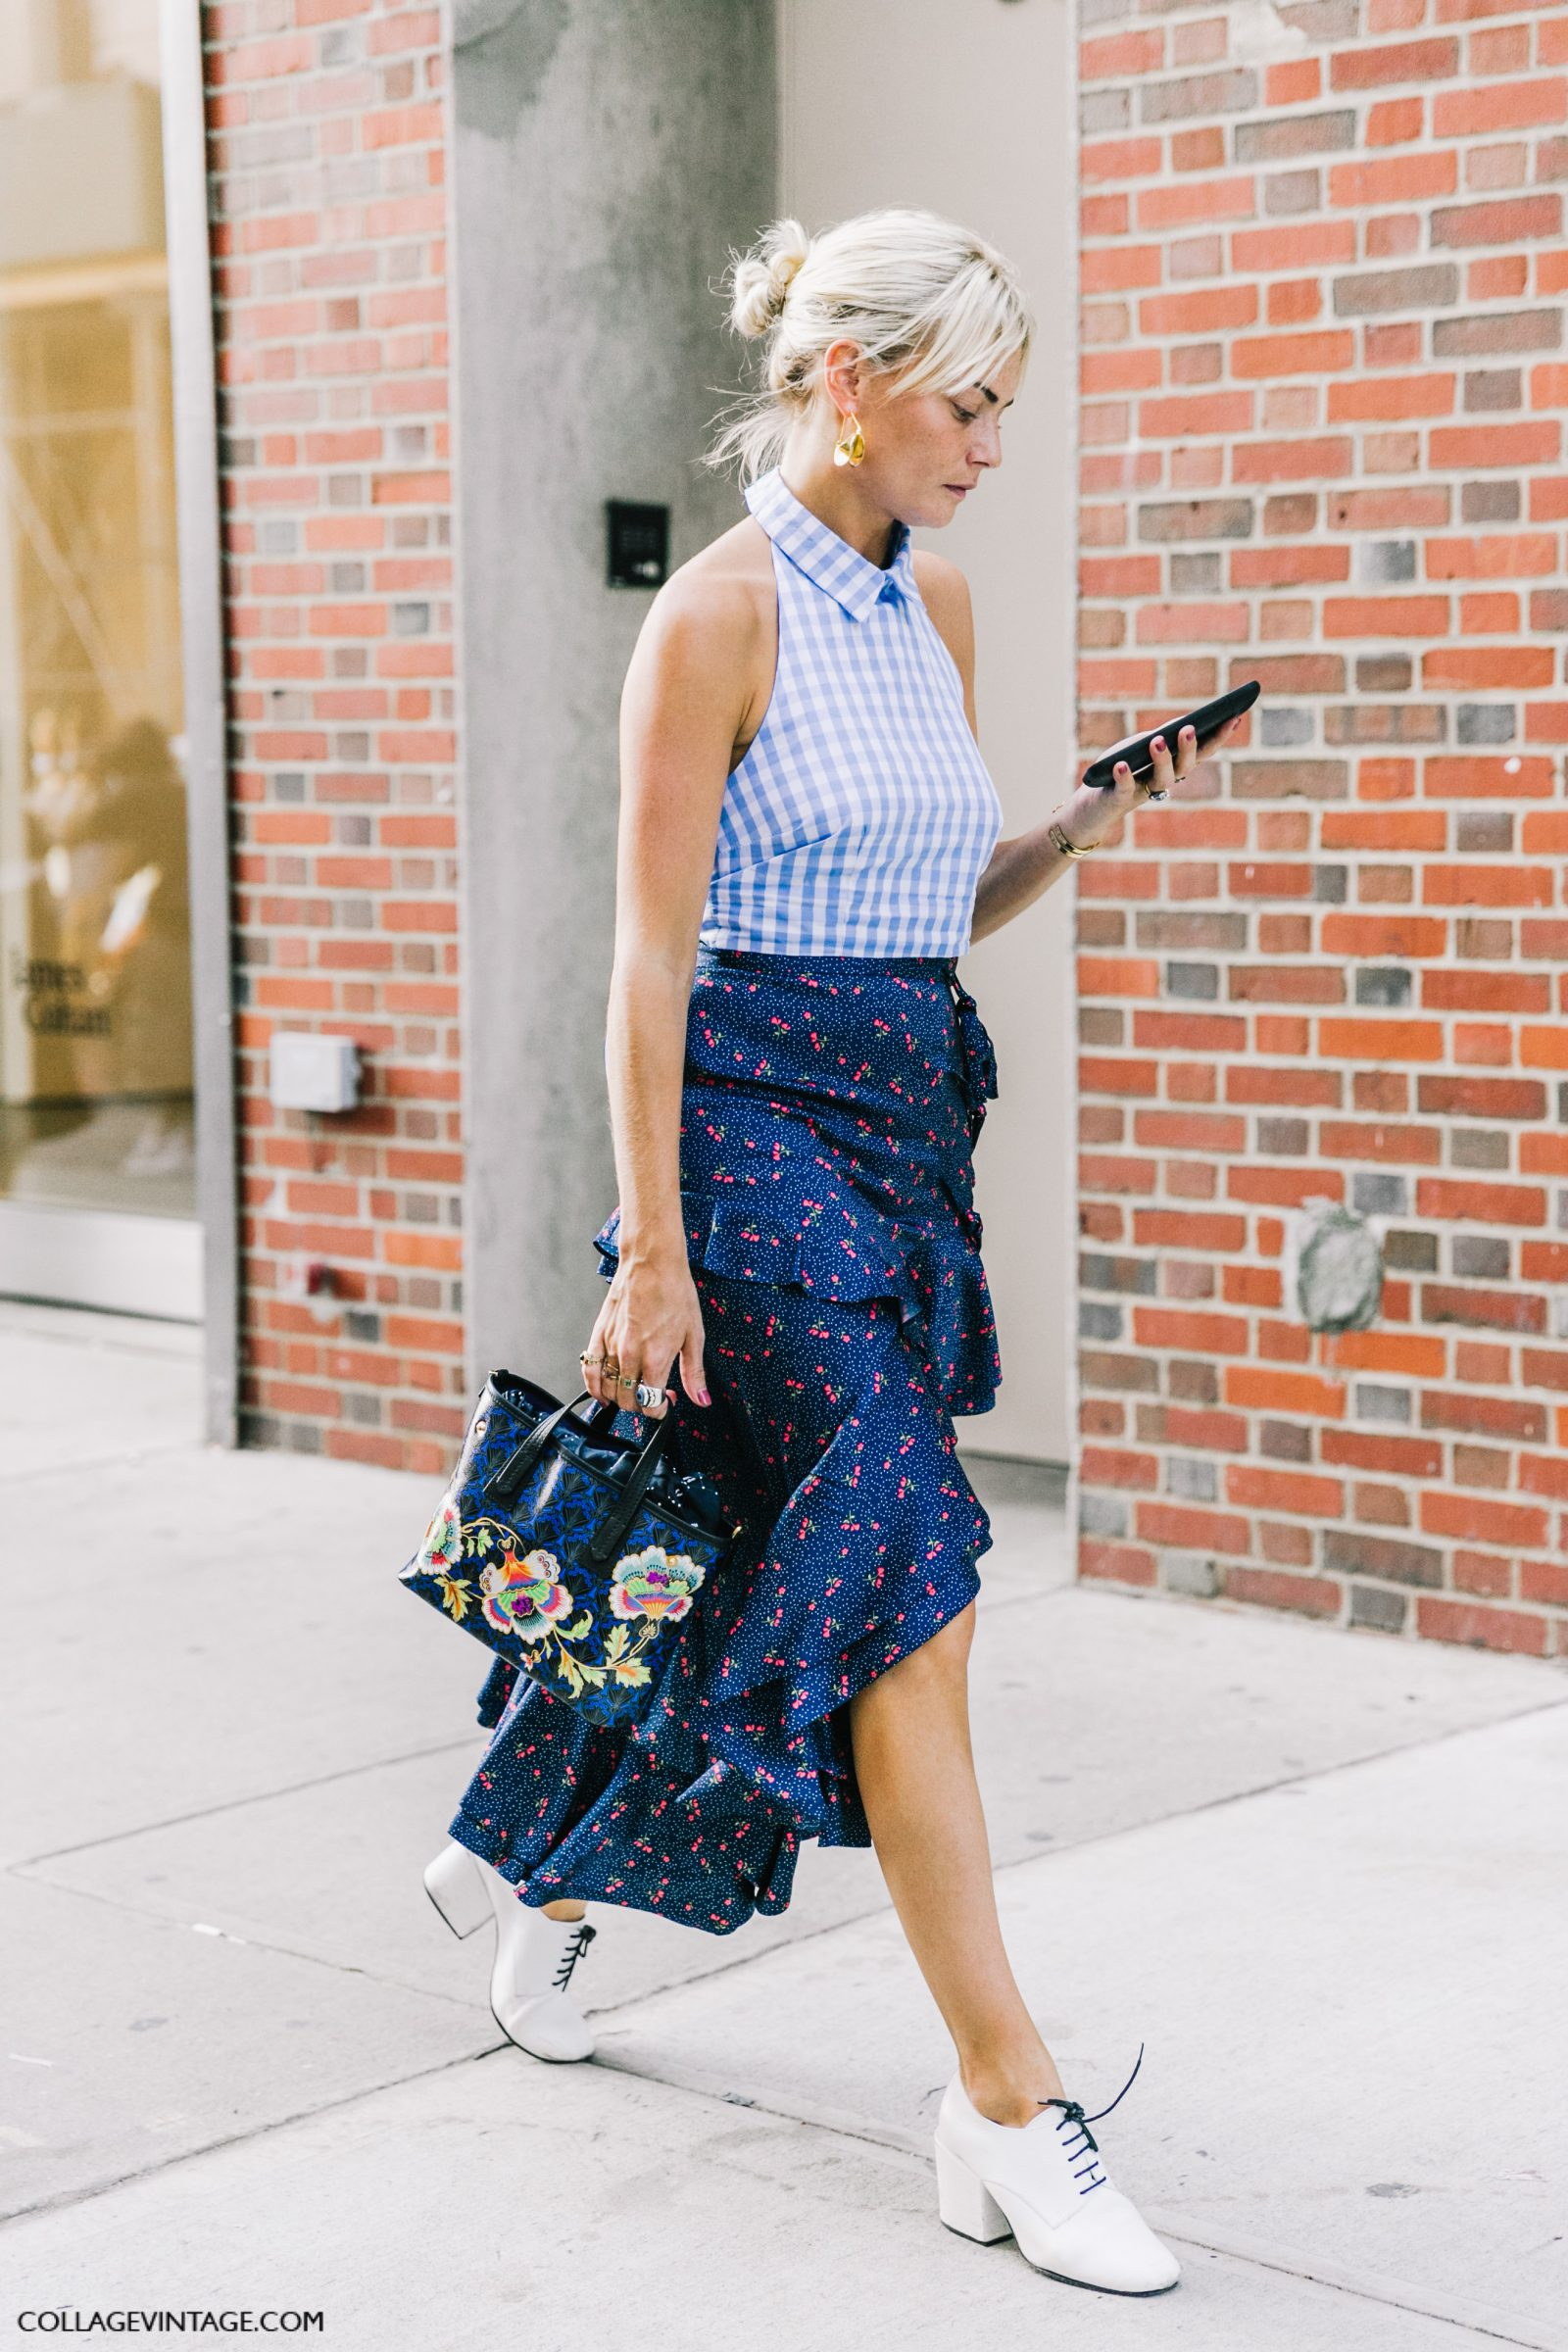 nyfw-new_york_fashion_week_ss17-street_style-outfits-collage_vintage-vintage-mansur_gavriel-rodarte-coach-245